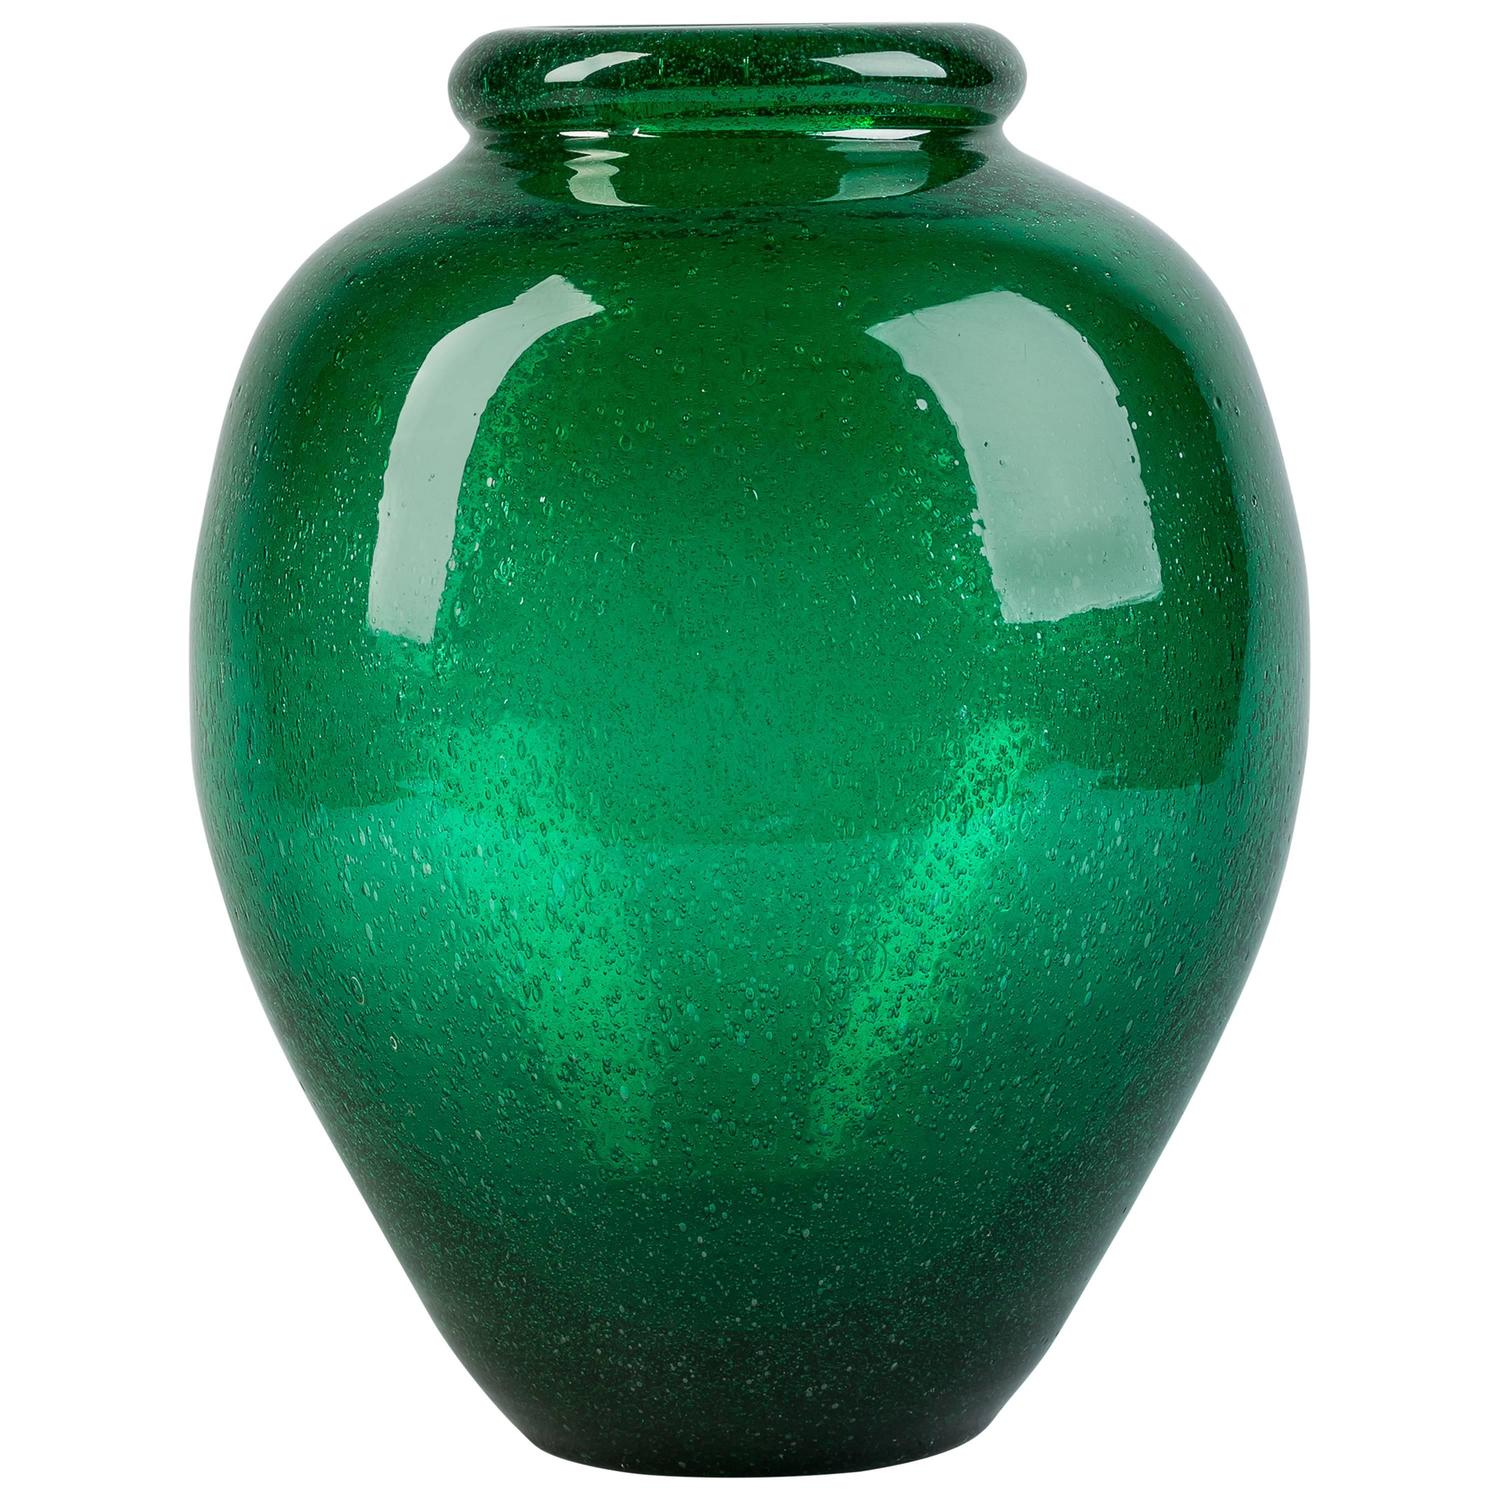 schneider green glass vase 1930 at 1stdibs. Black Bedroom Furniture Sets. Home Design Ideas